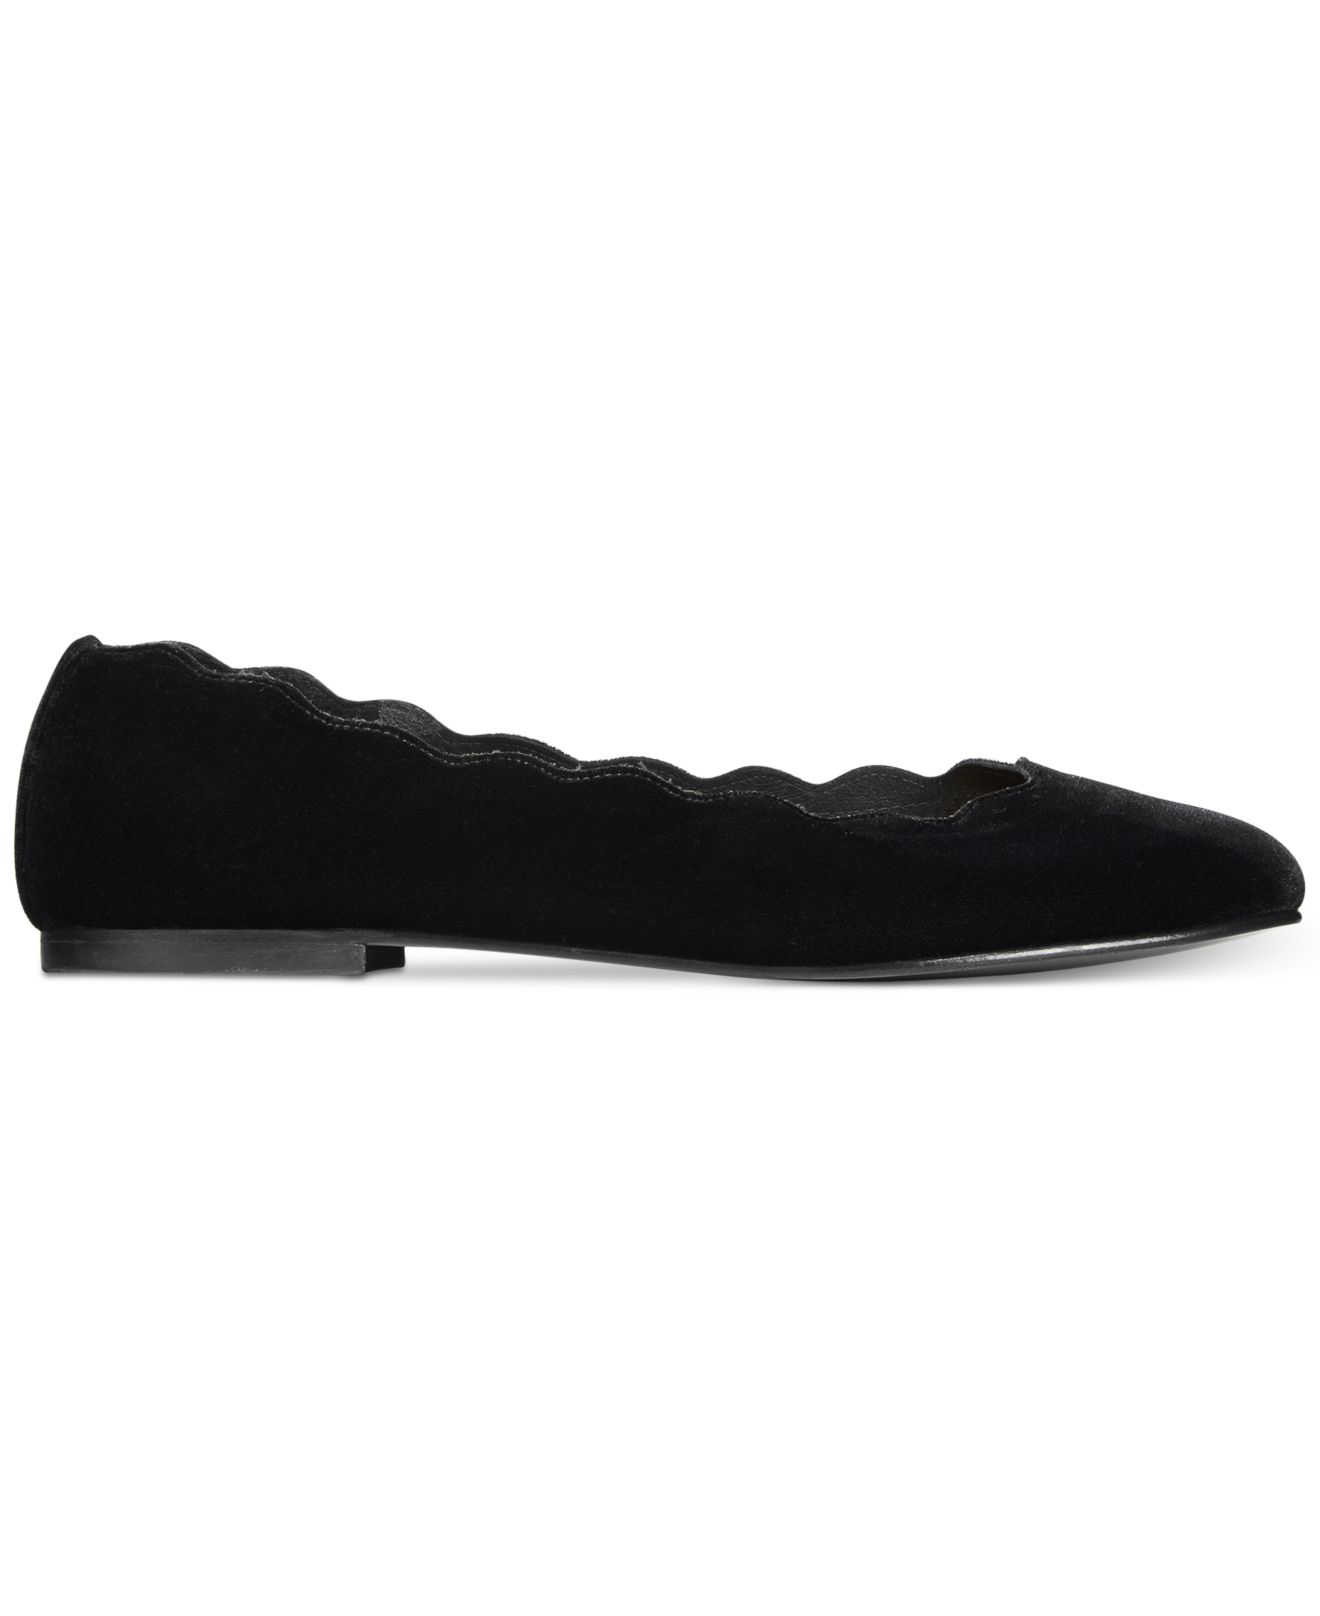 French Sole Driving Shoes Black